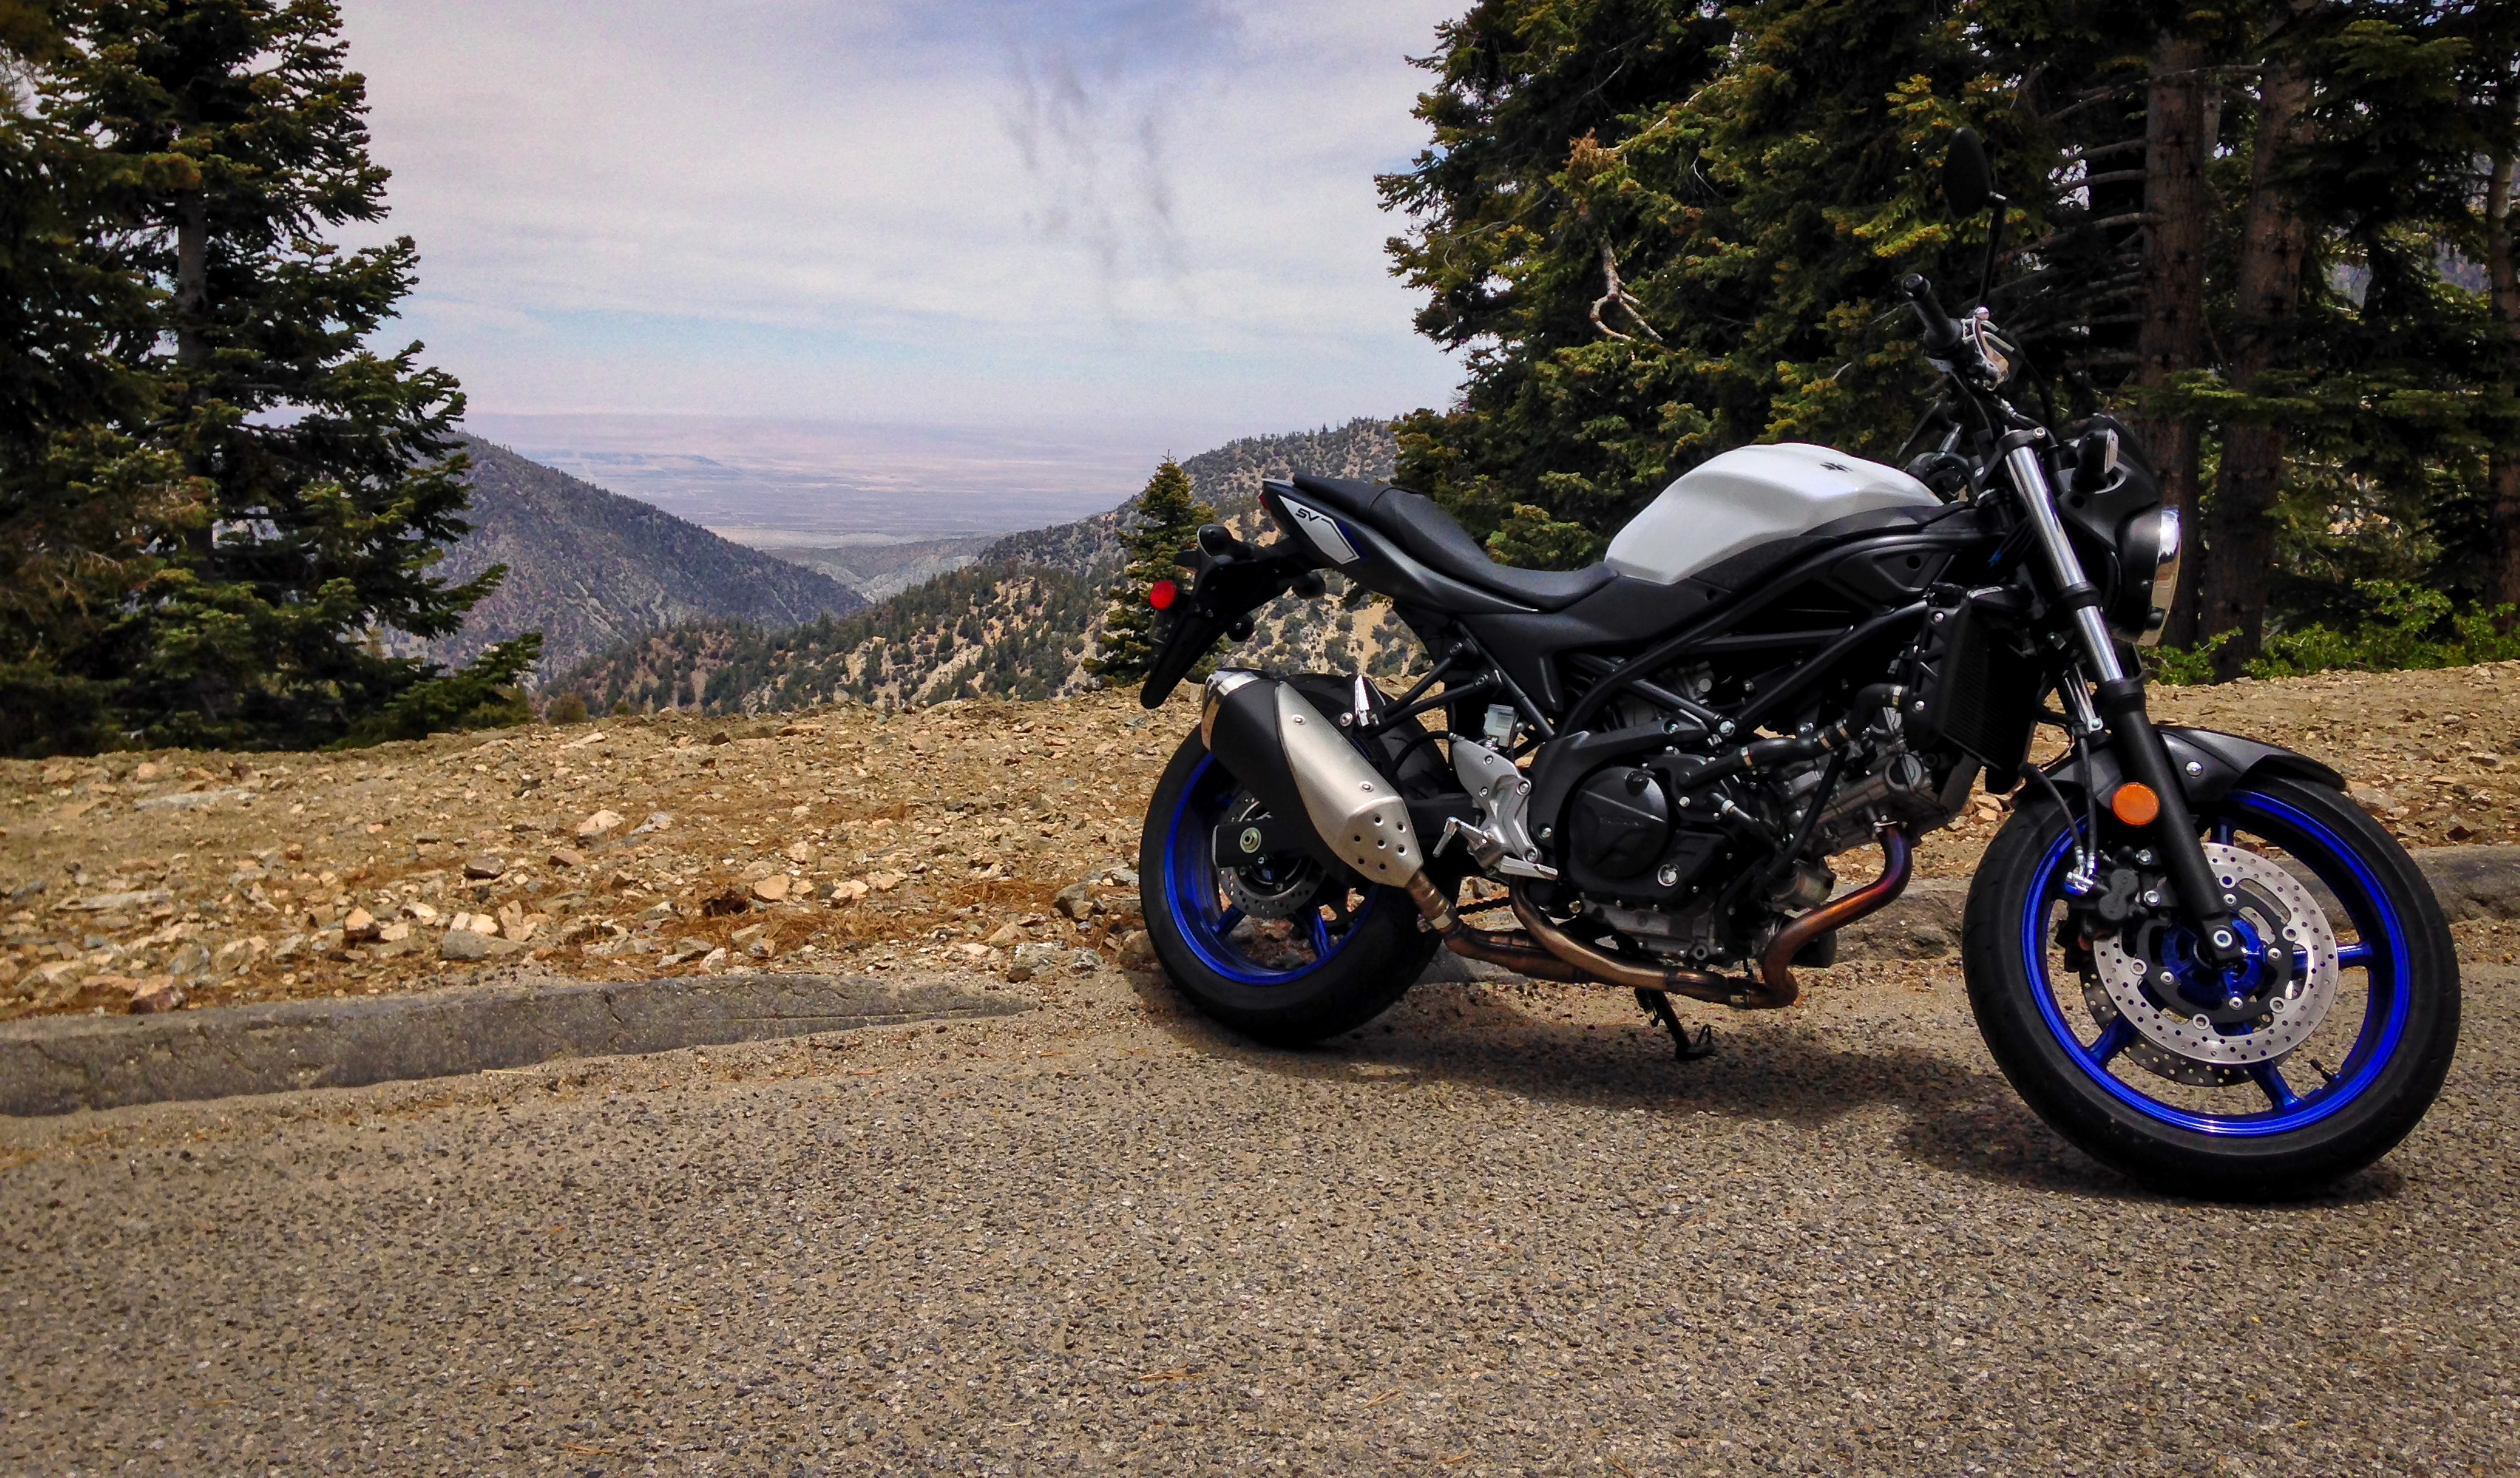 2017 Suzuki SV650 first ride review - RevZilla